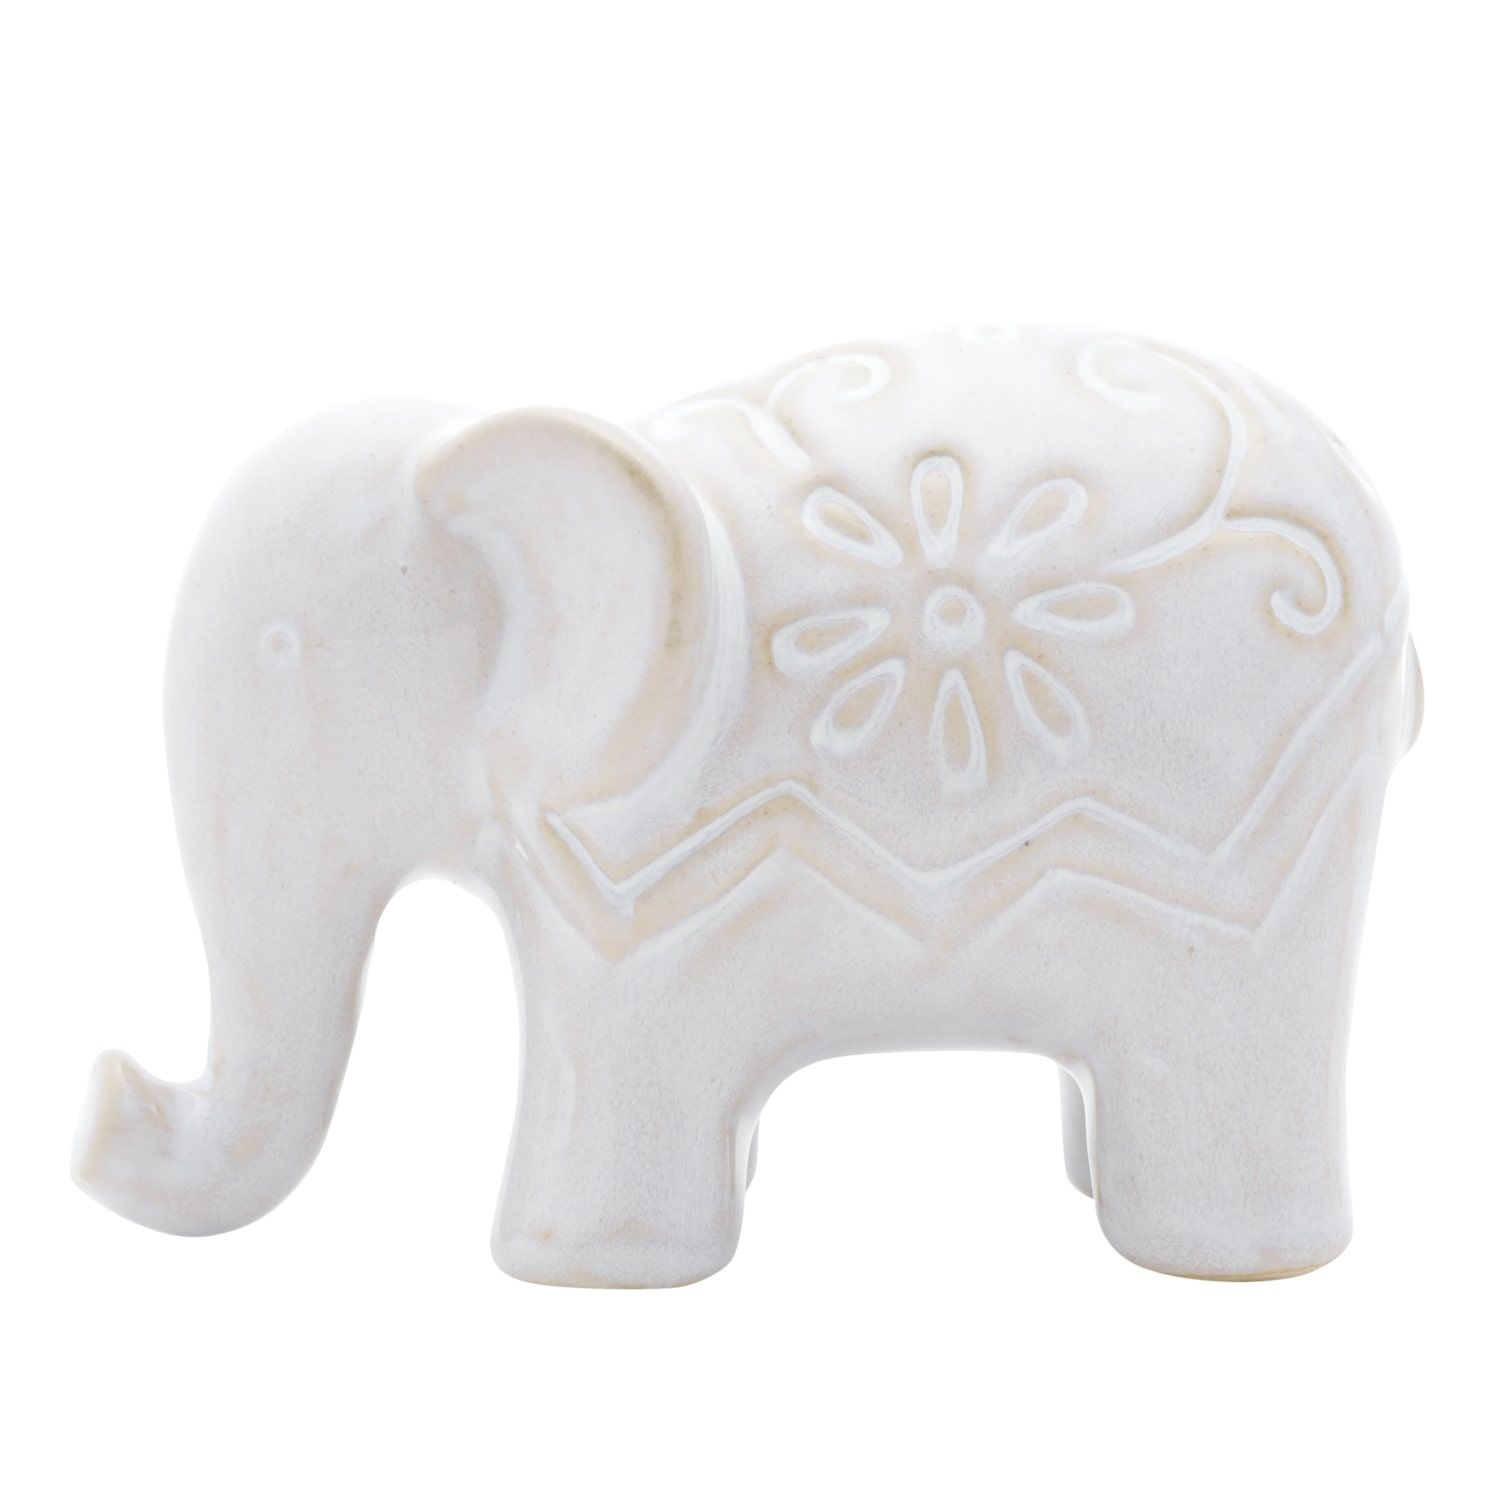 DECOR CERAMICA ELEPHANT DECORATED FLOWERS BRANCO 11,5X6,3X7,8 cm